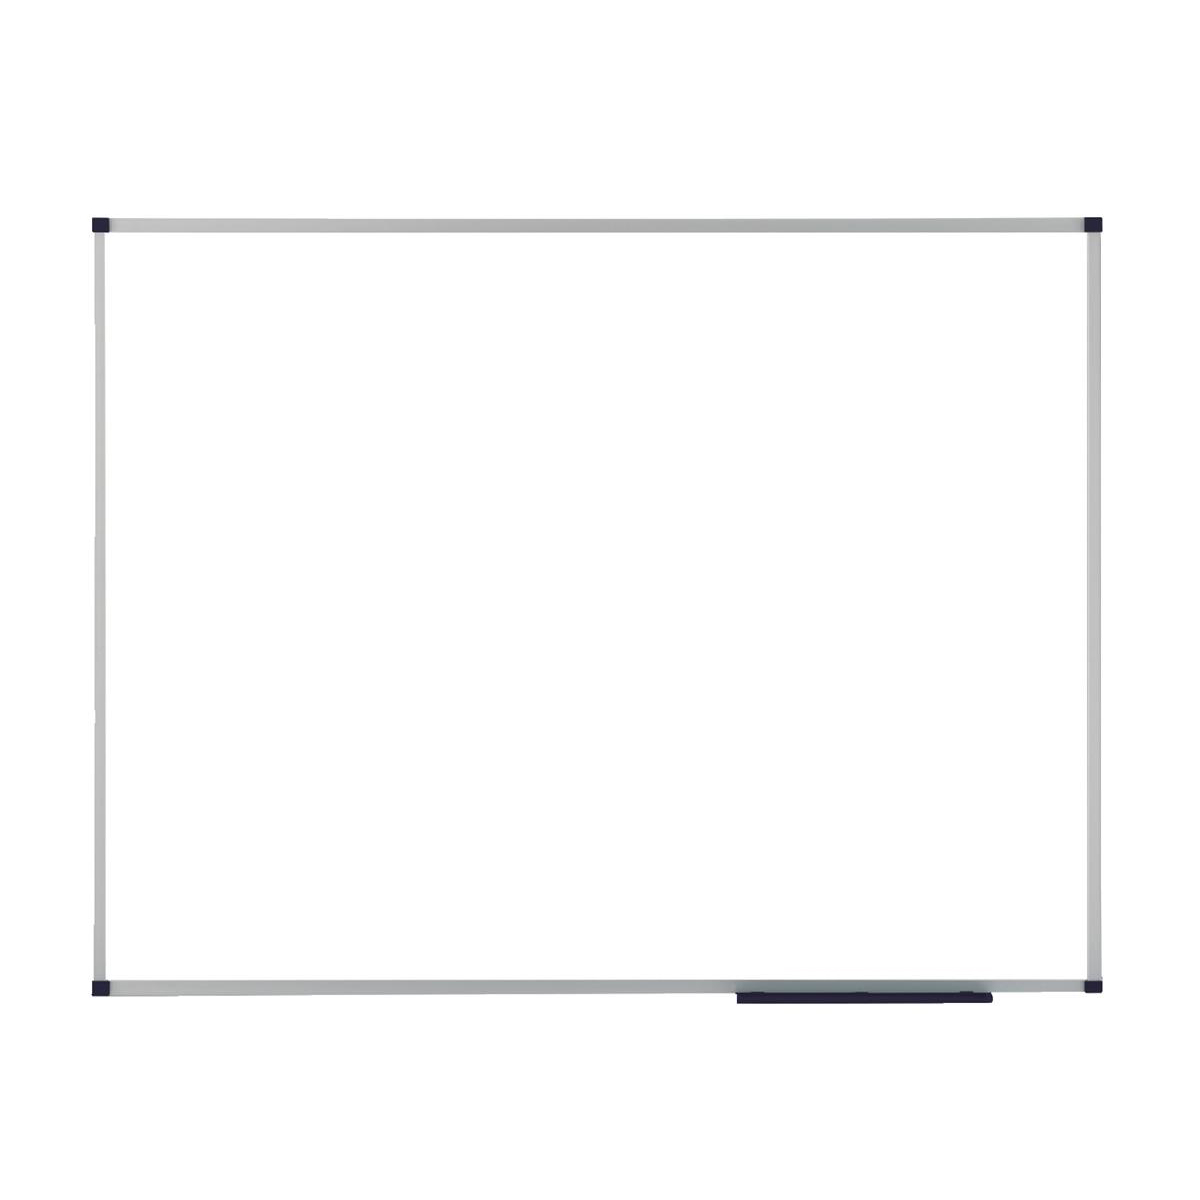 Nobo Prestige Enamel Eco Whiteboard Magnetic Fixings Included W1200xH900mm White Ref 1905236